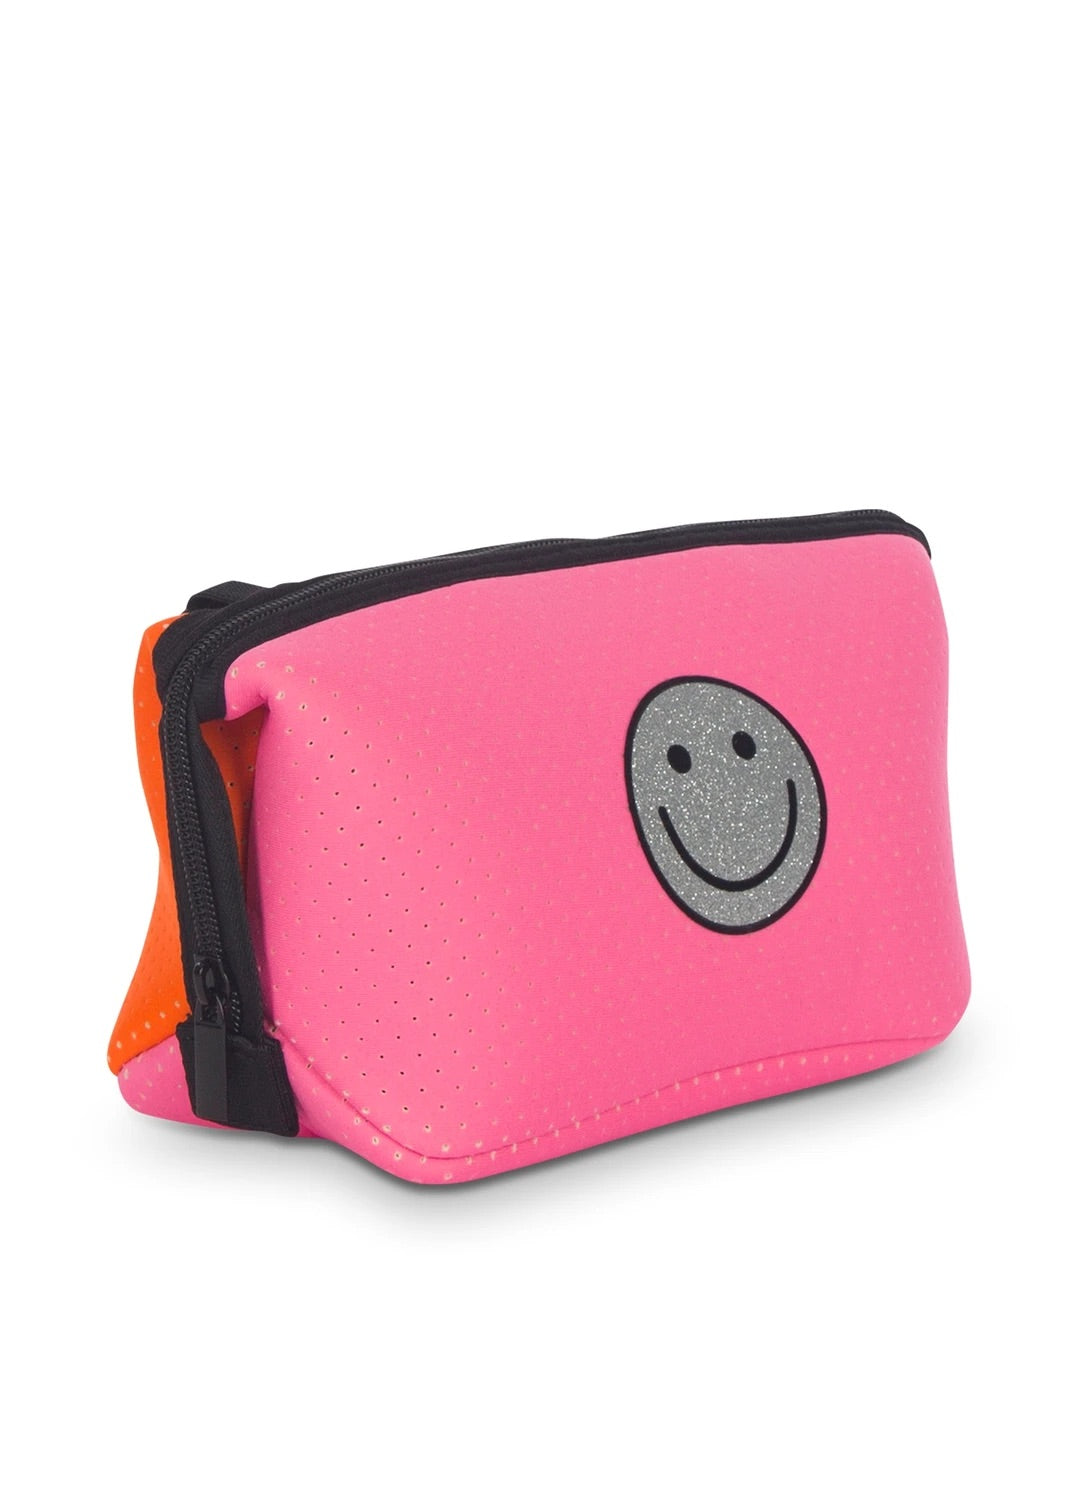 Erin Smiley Cosmetic Case